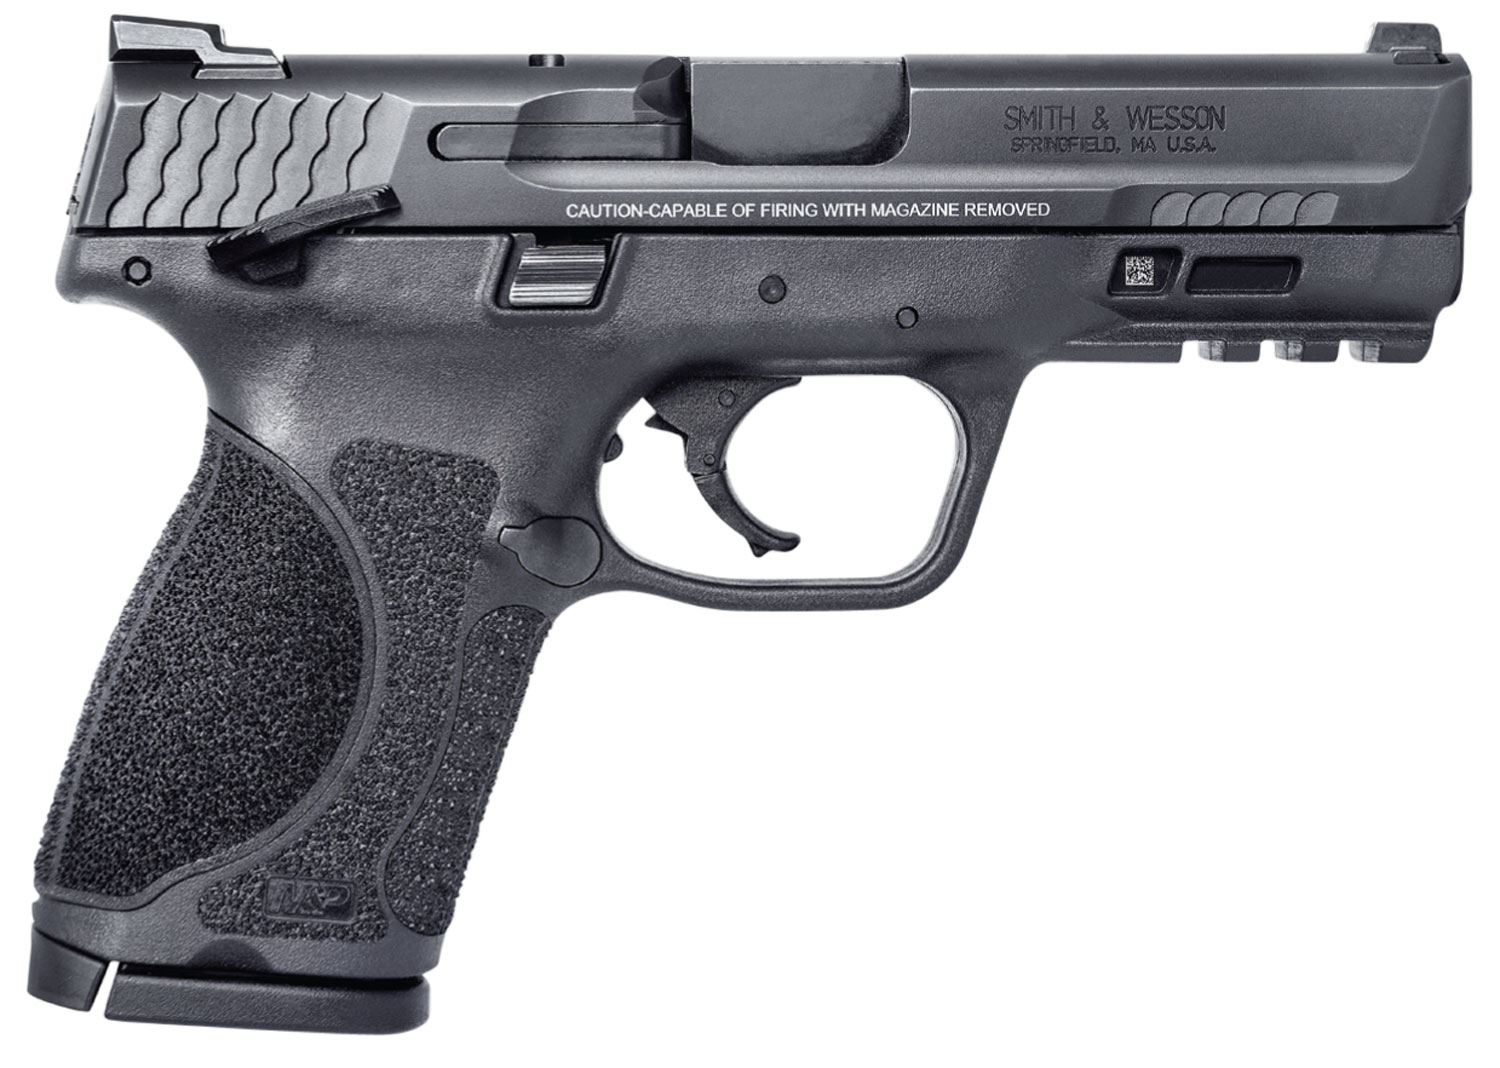 Smith & Wesson 11686 M&P 9 M2.0 Double 9mm Luger 4